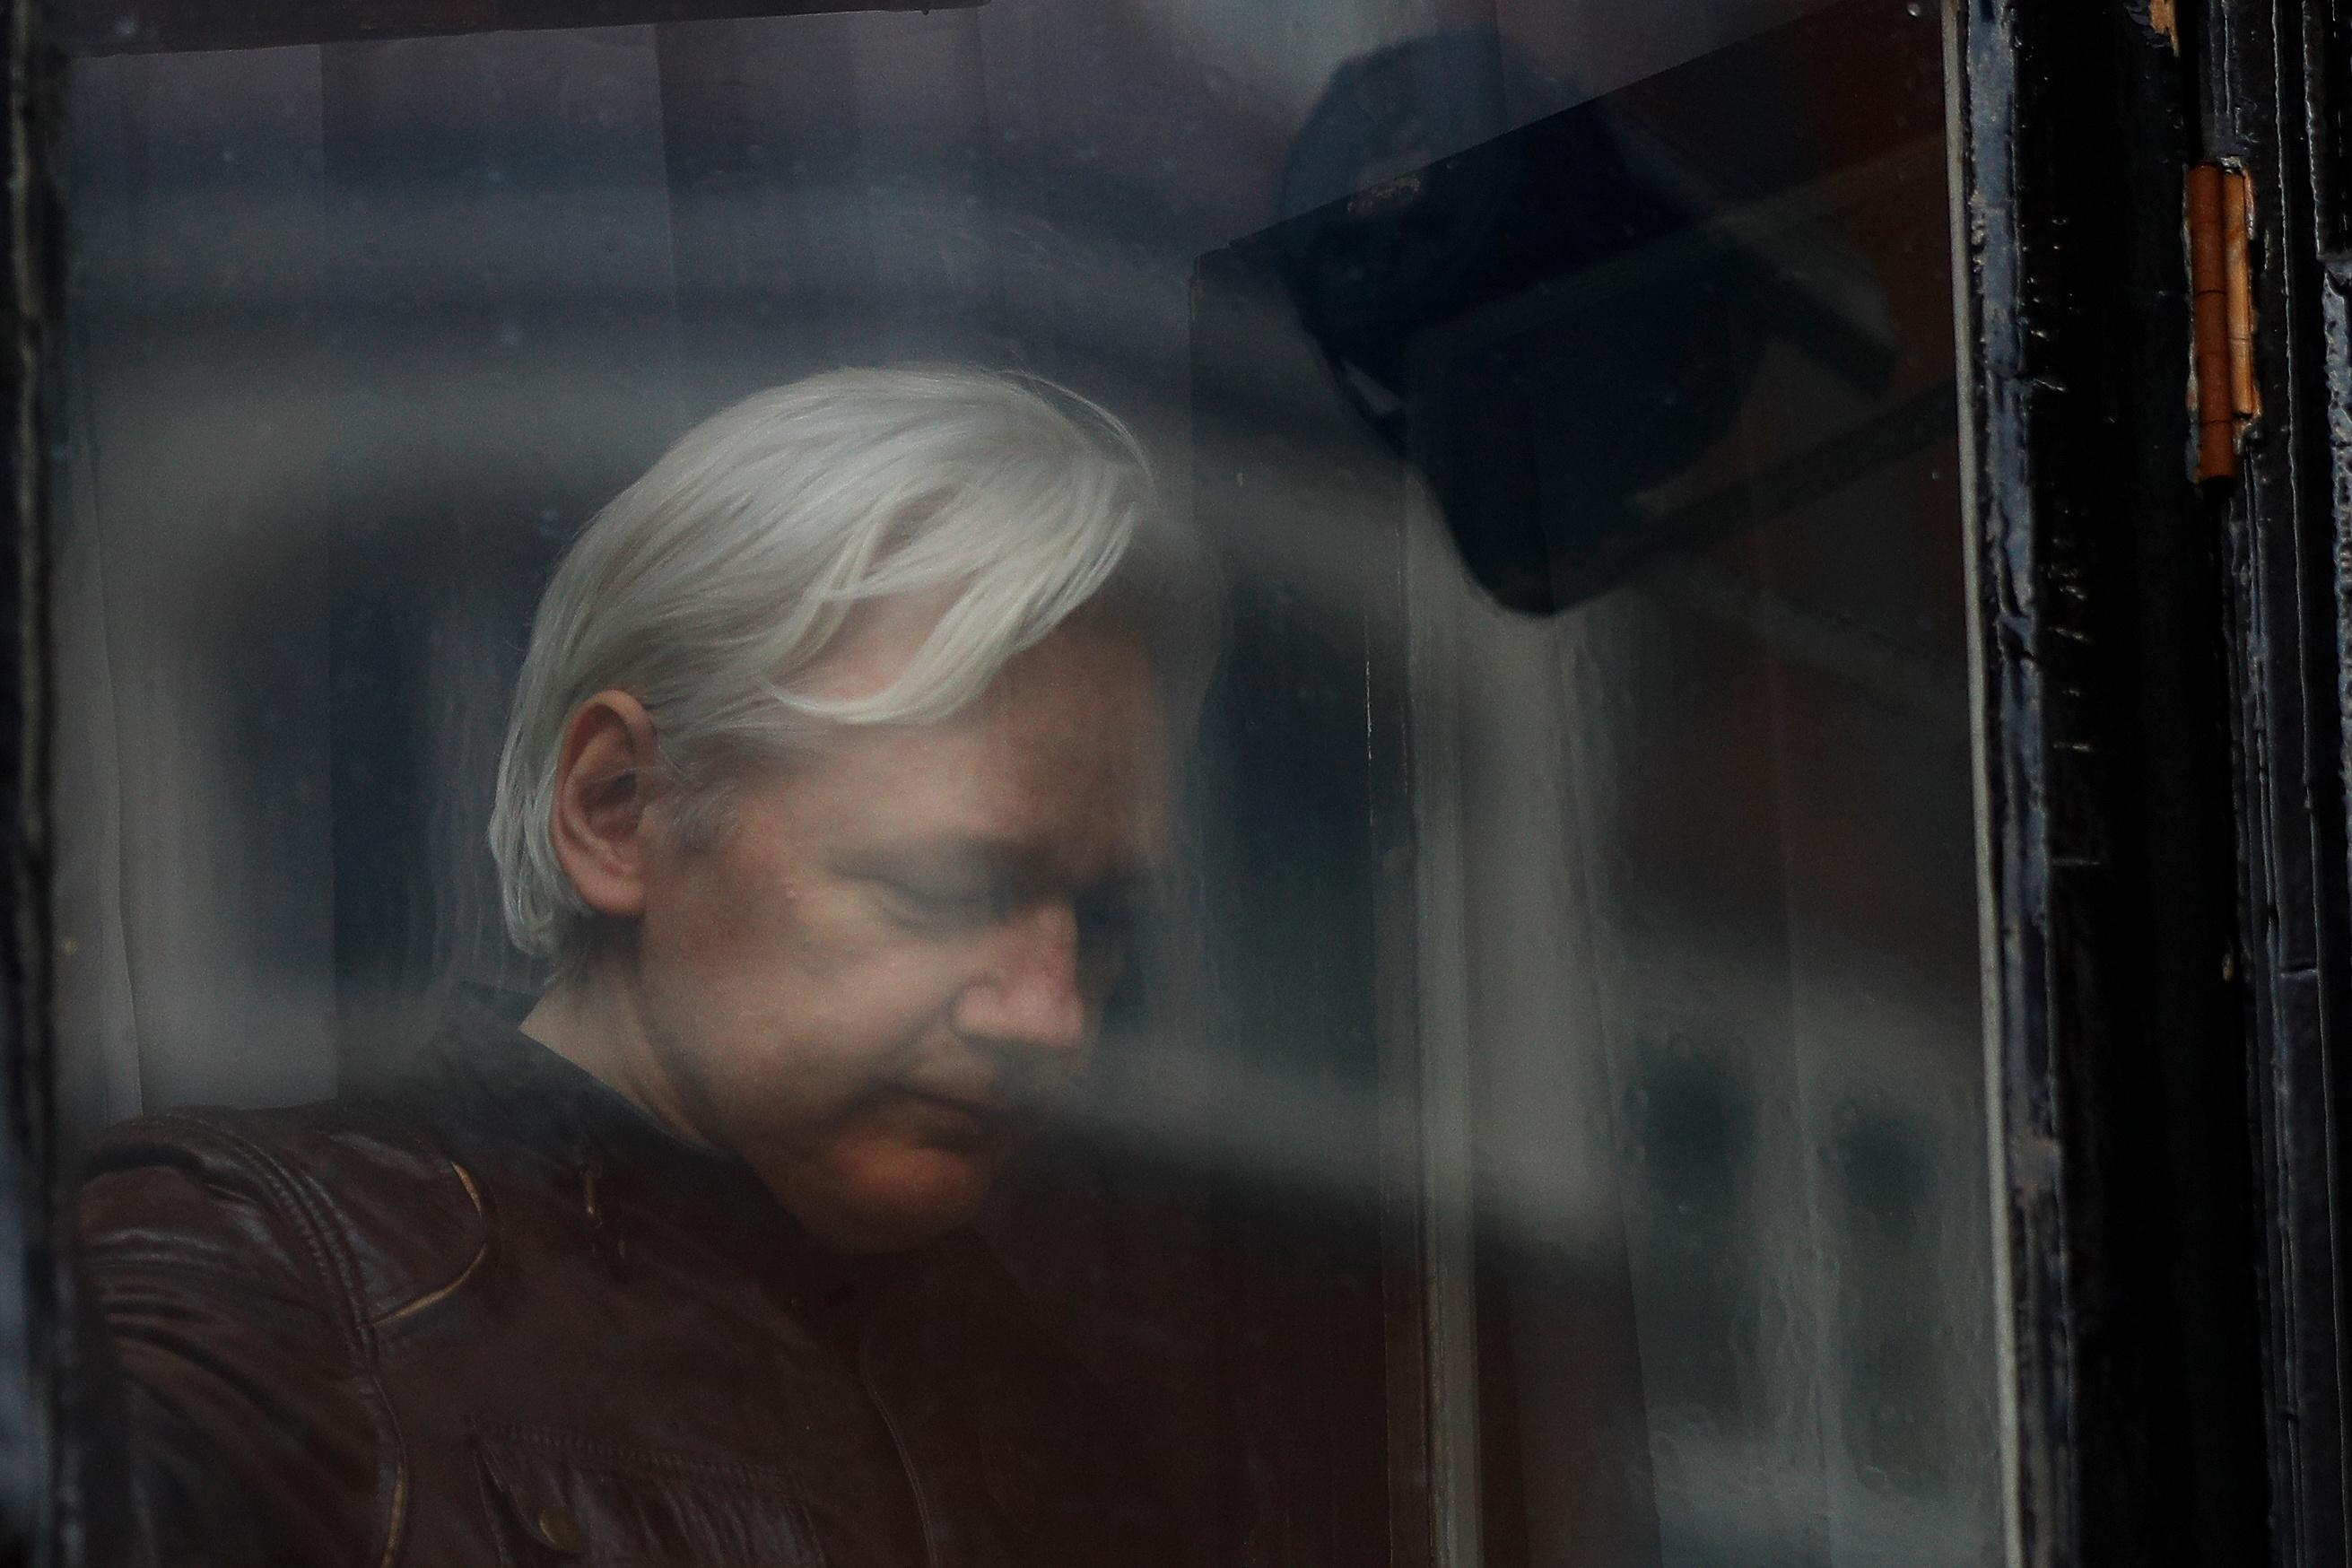 U.S. prosecutors press witnesses to testify against Assange: WikiLeaks